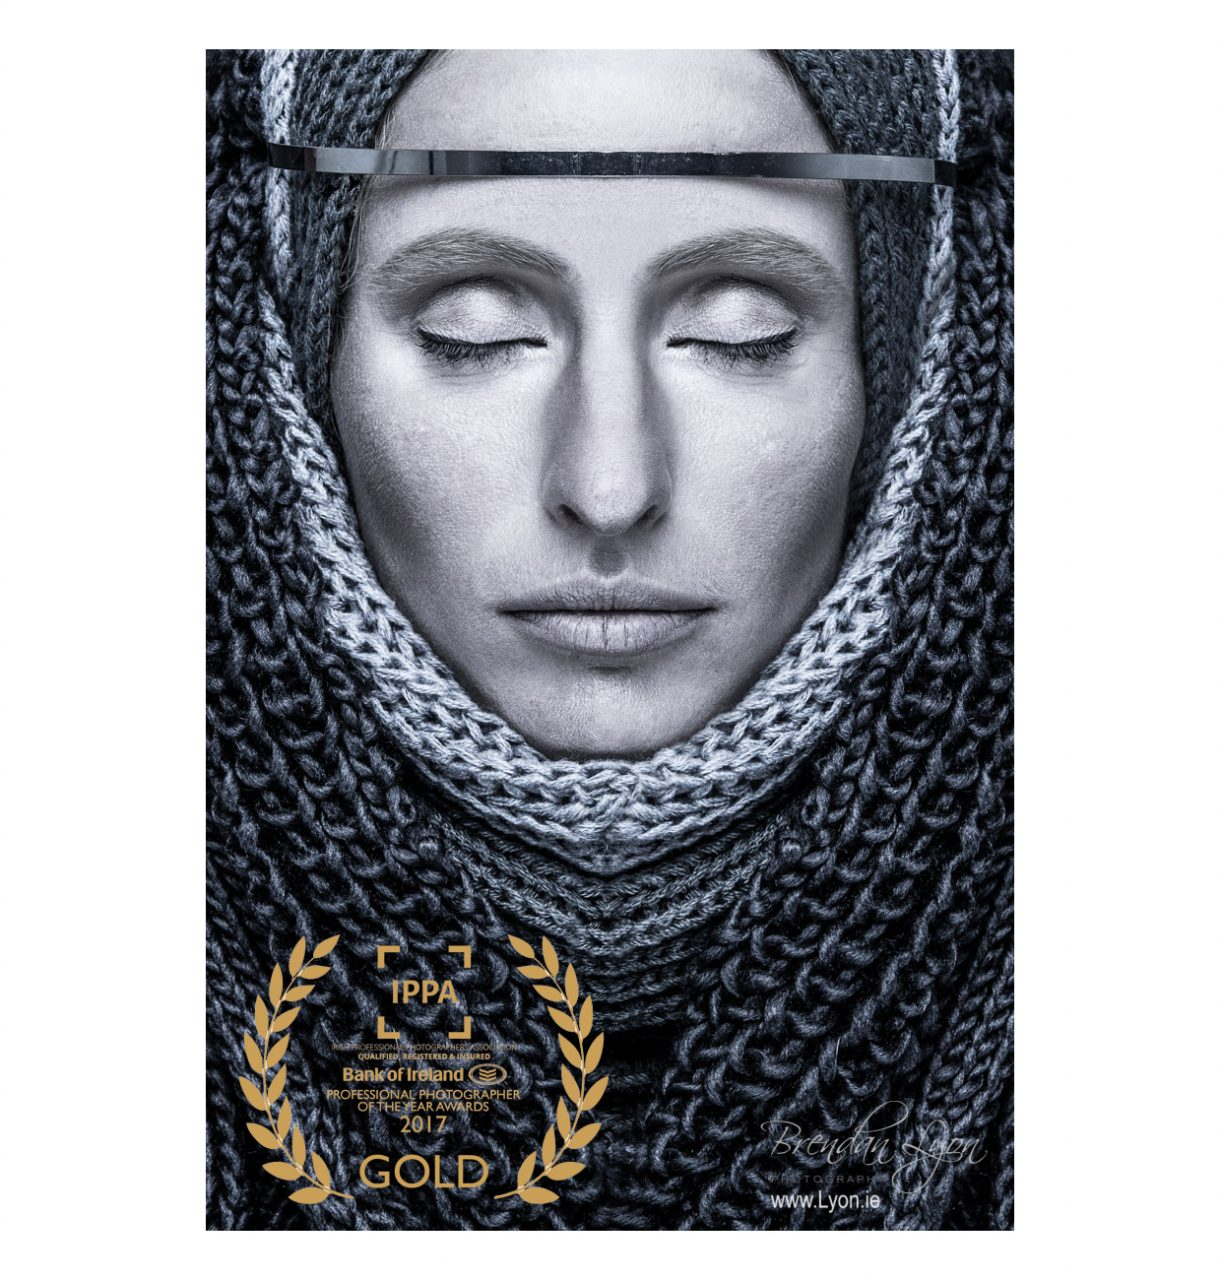 award winning monochrome image of medieval woman, with closed eyes, in chainmail clothing